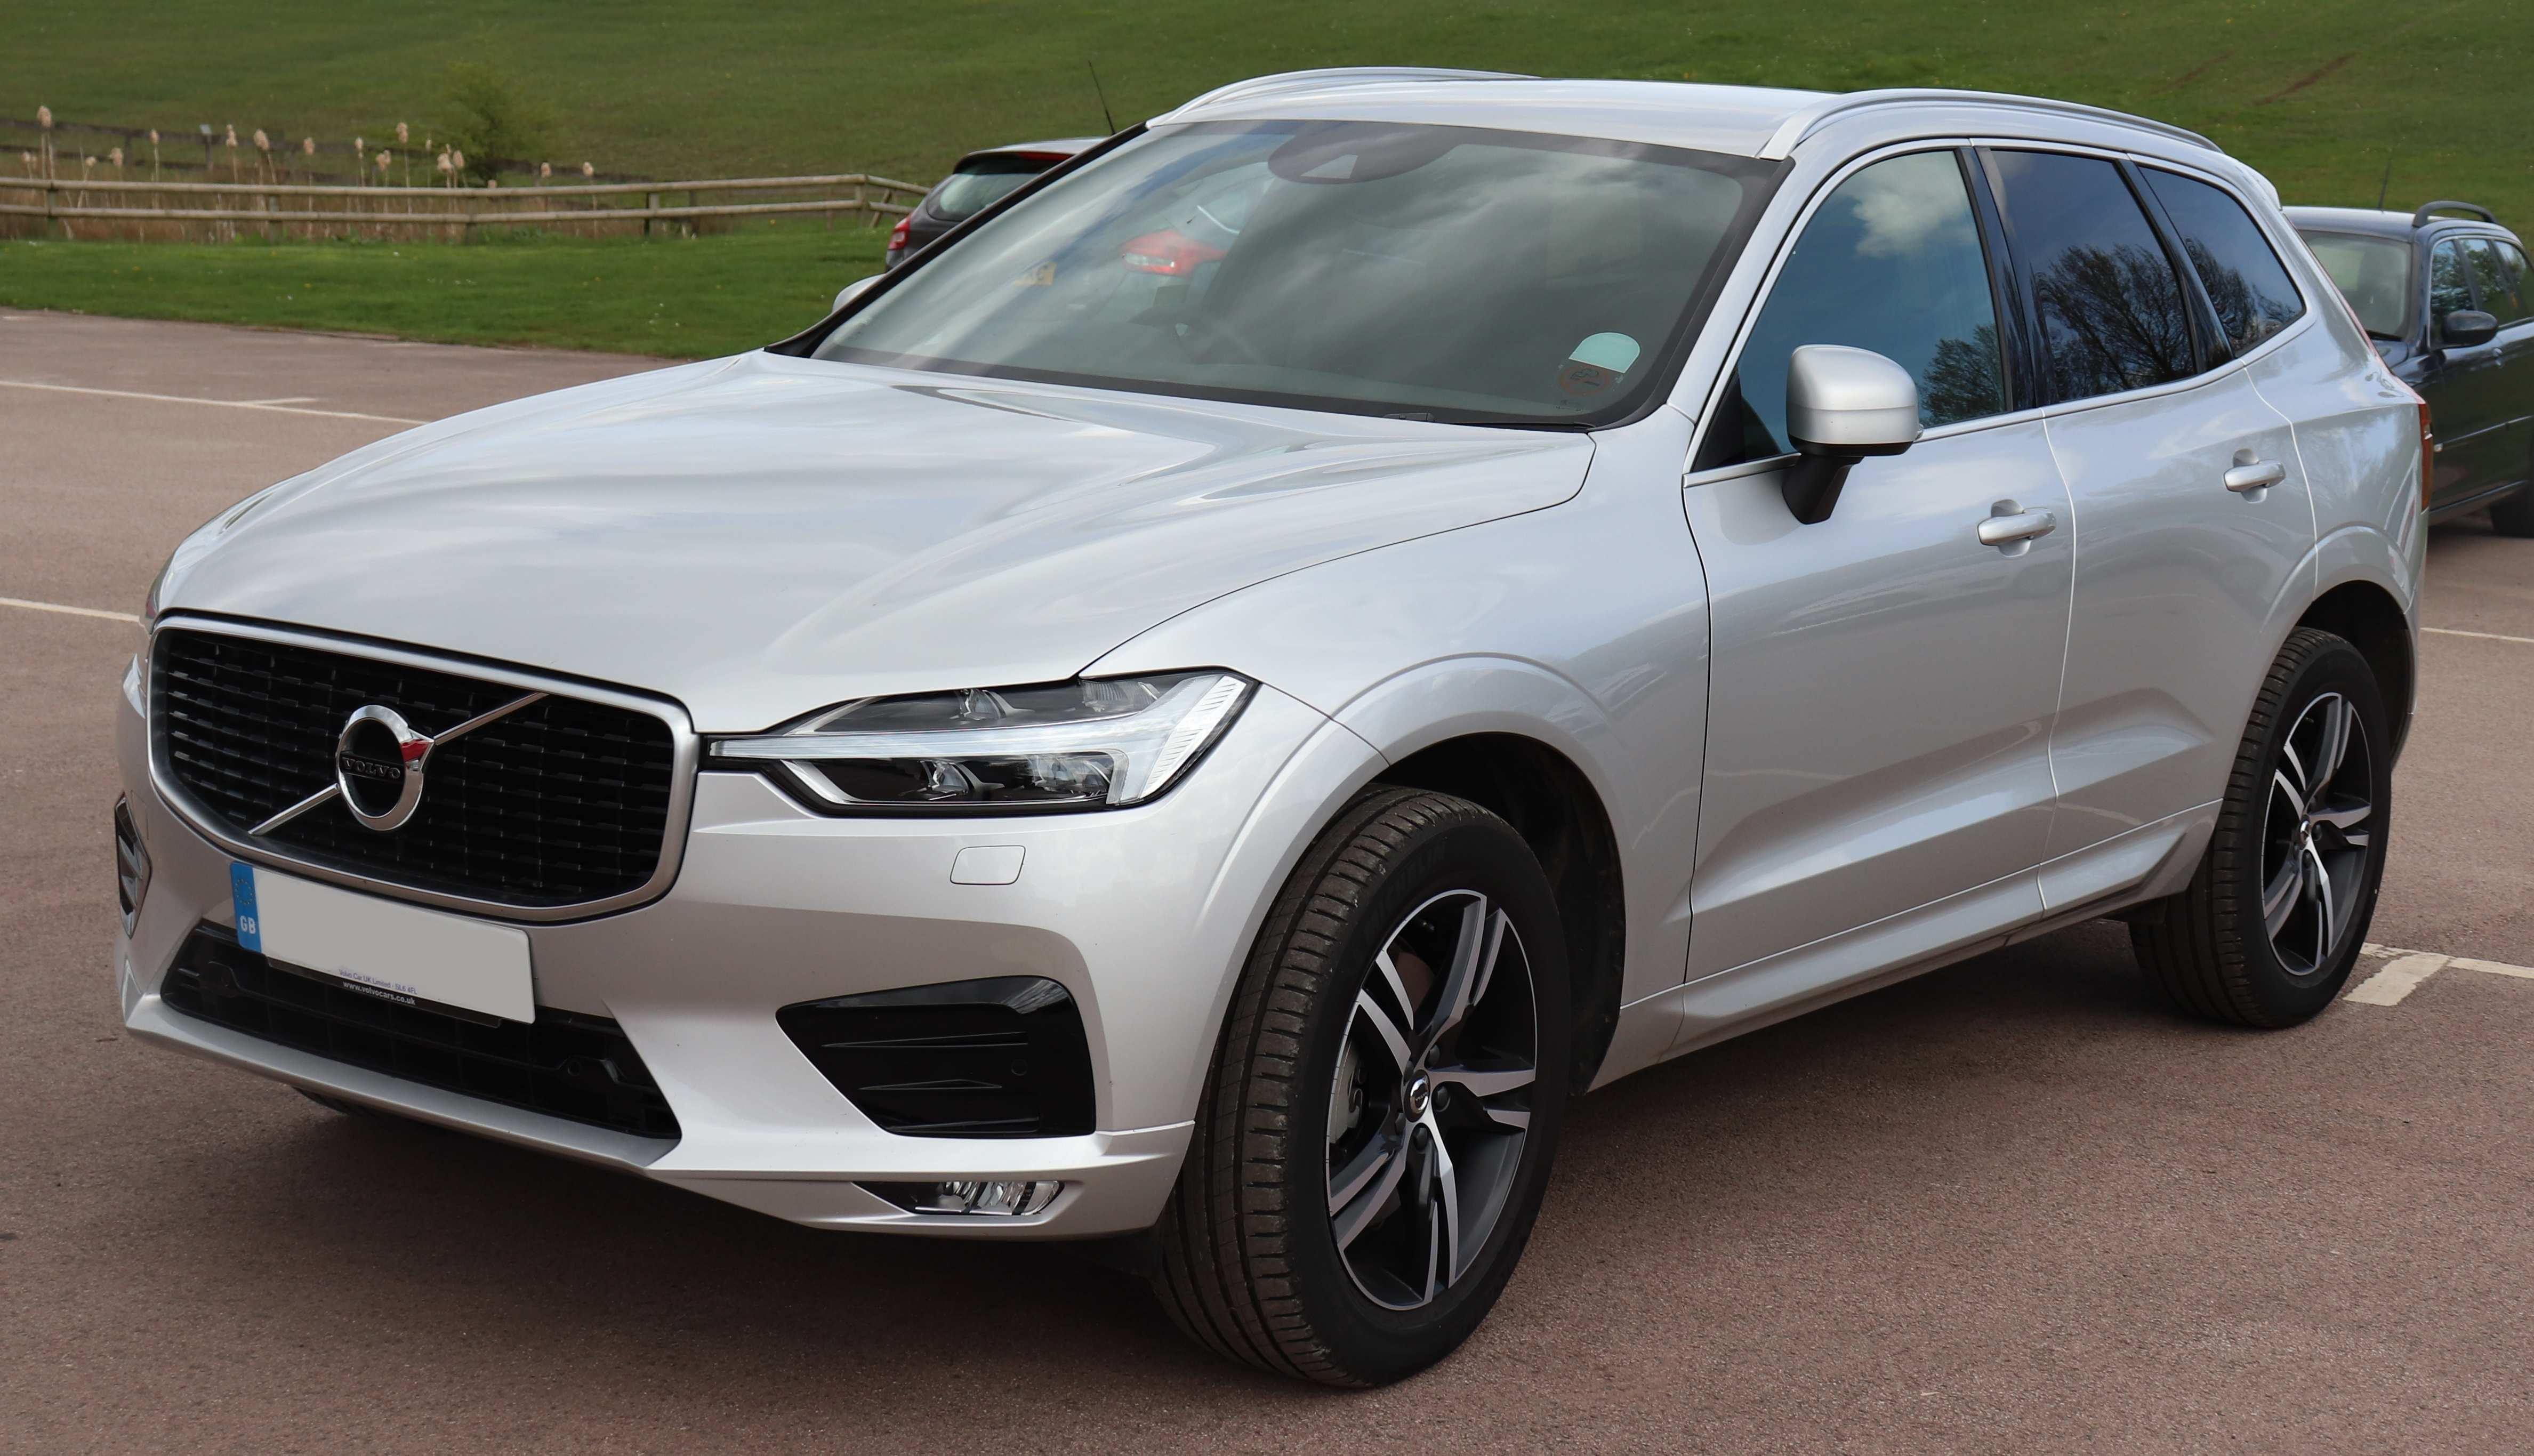 90 All New Volvo Xc60 2019 Manual First Drive